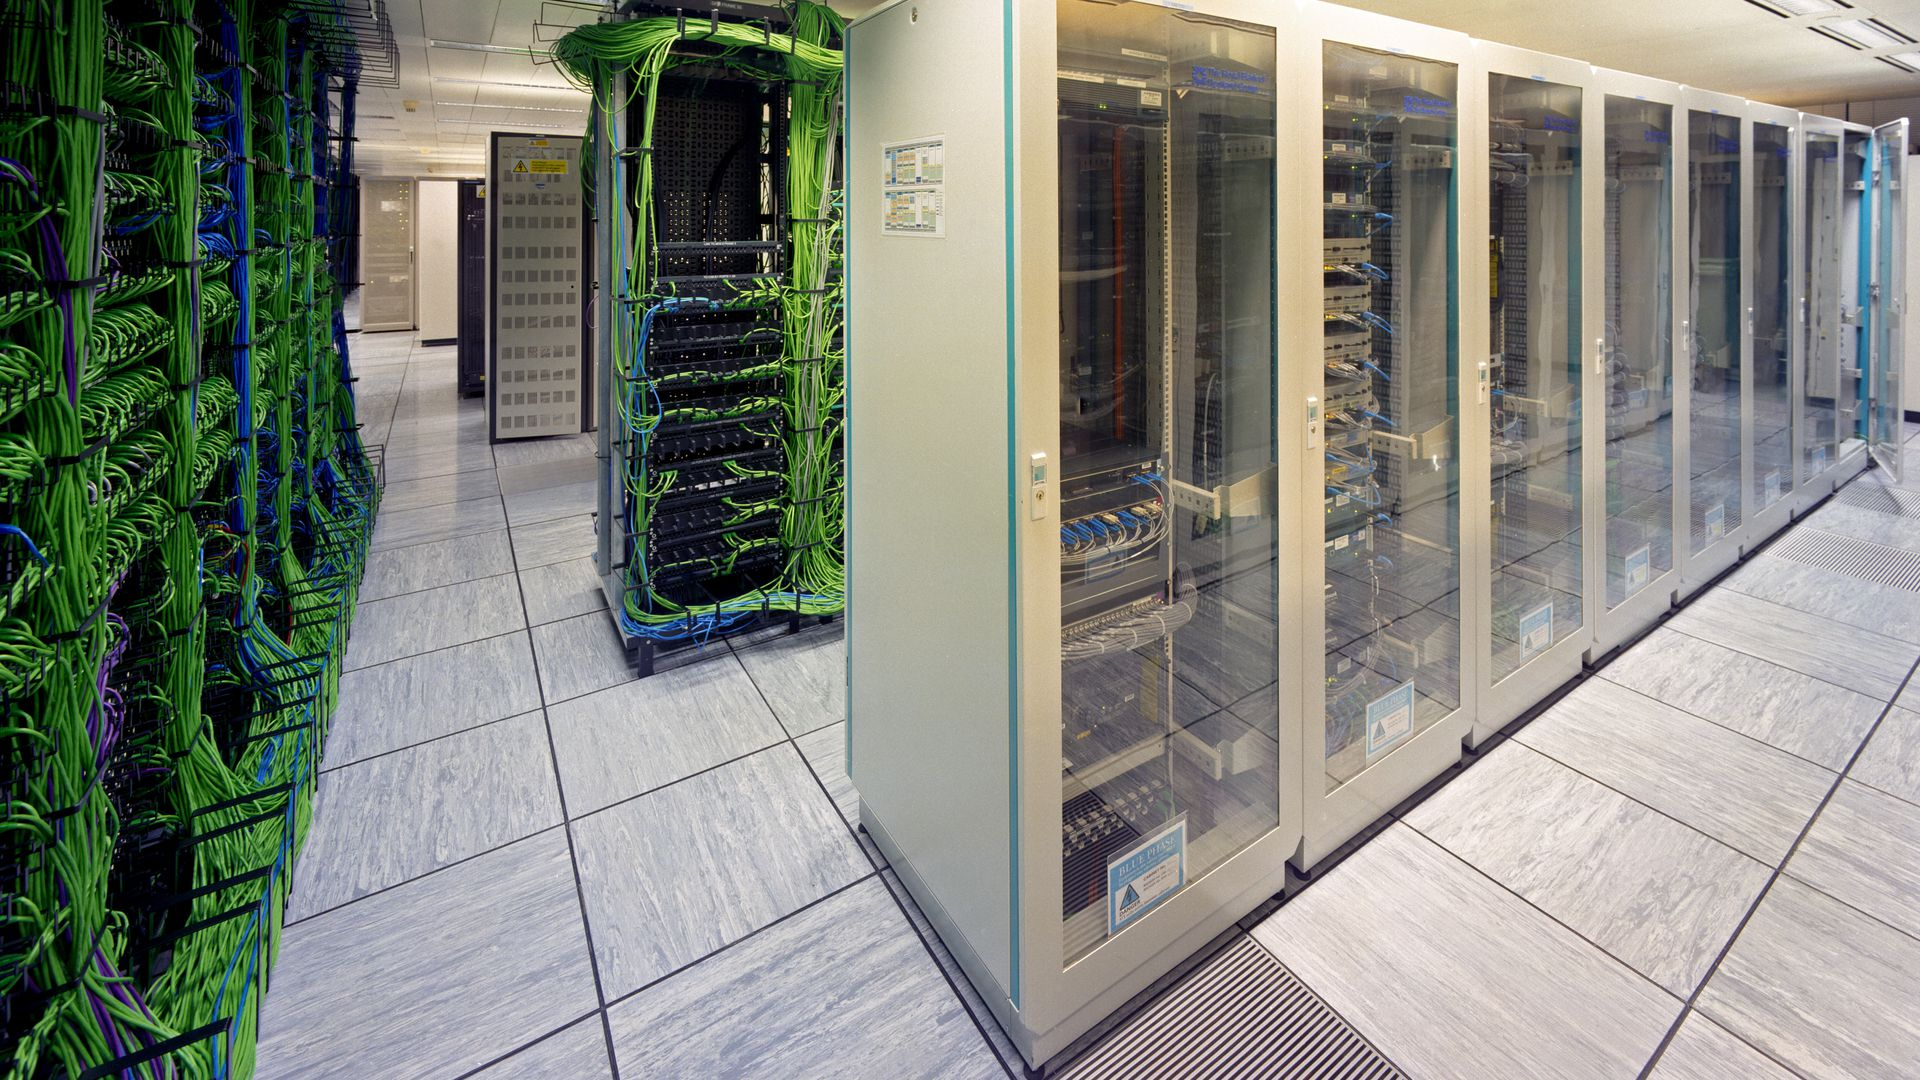 Data center green wires on left white cases on right